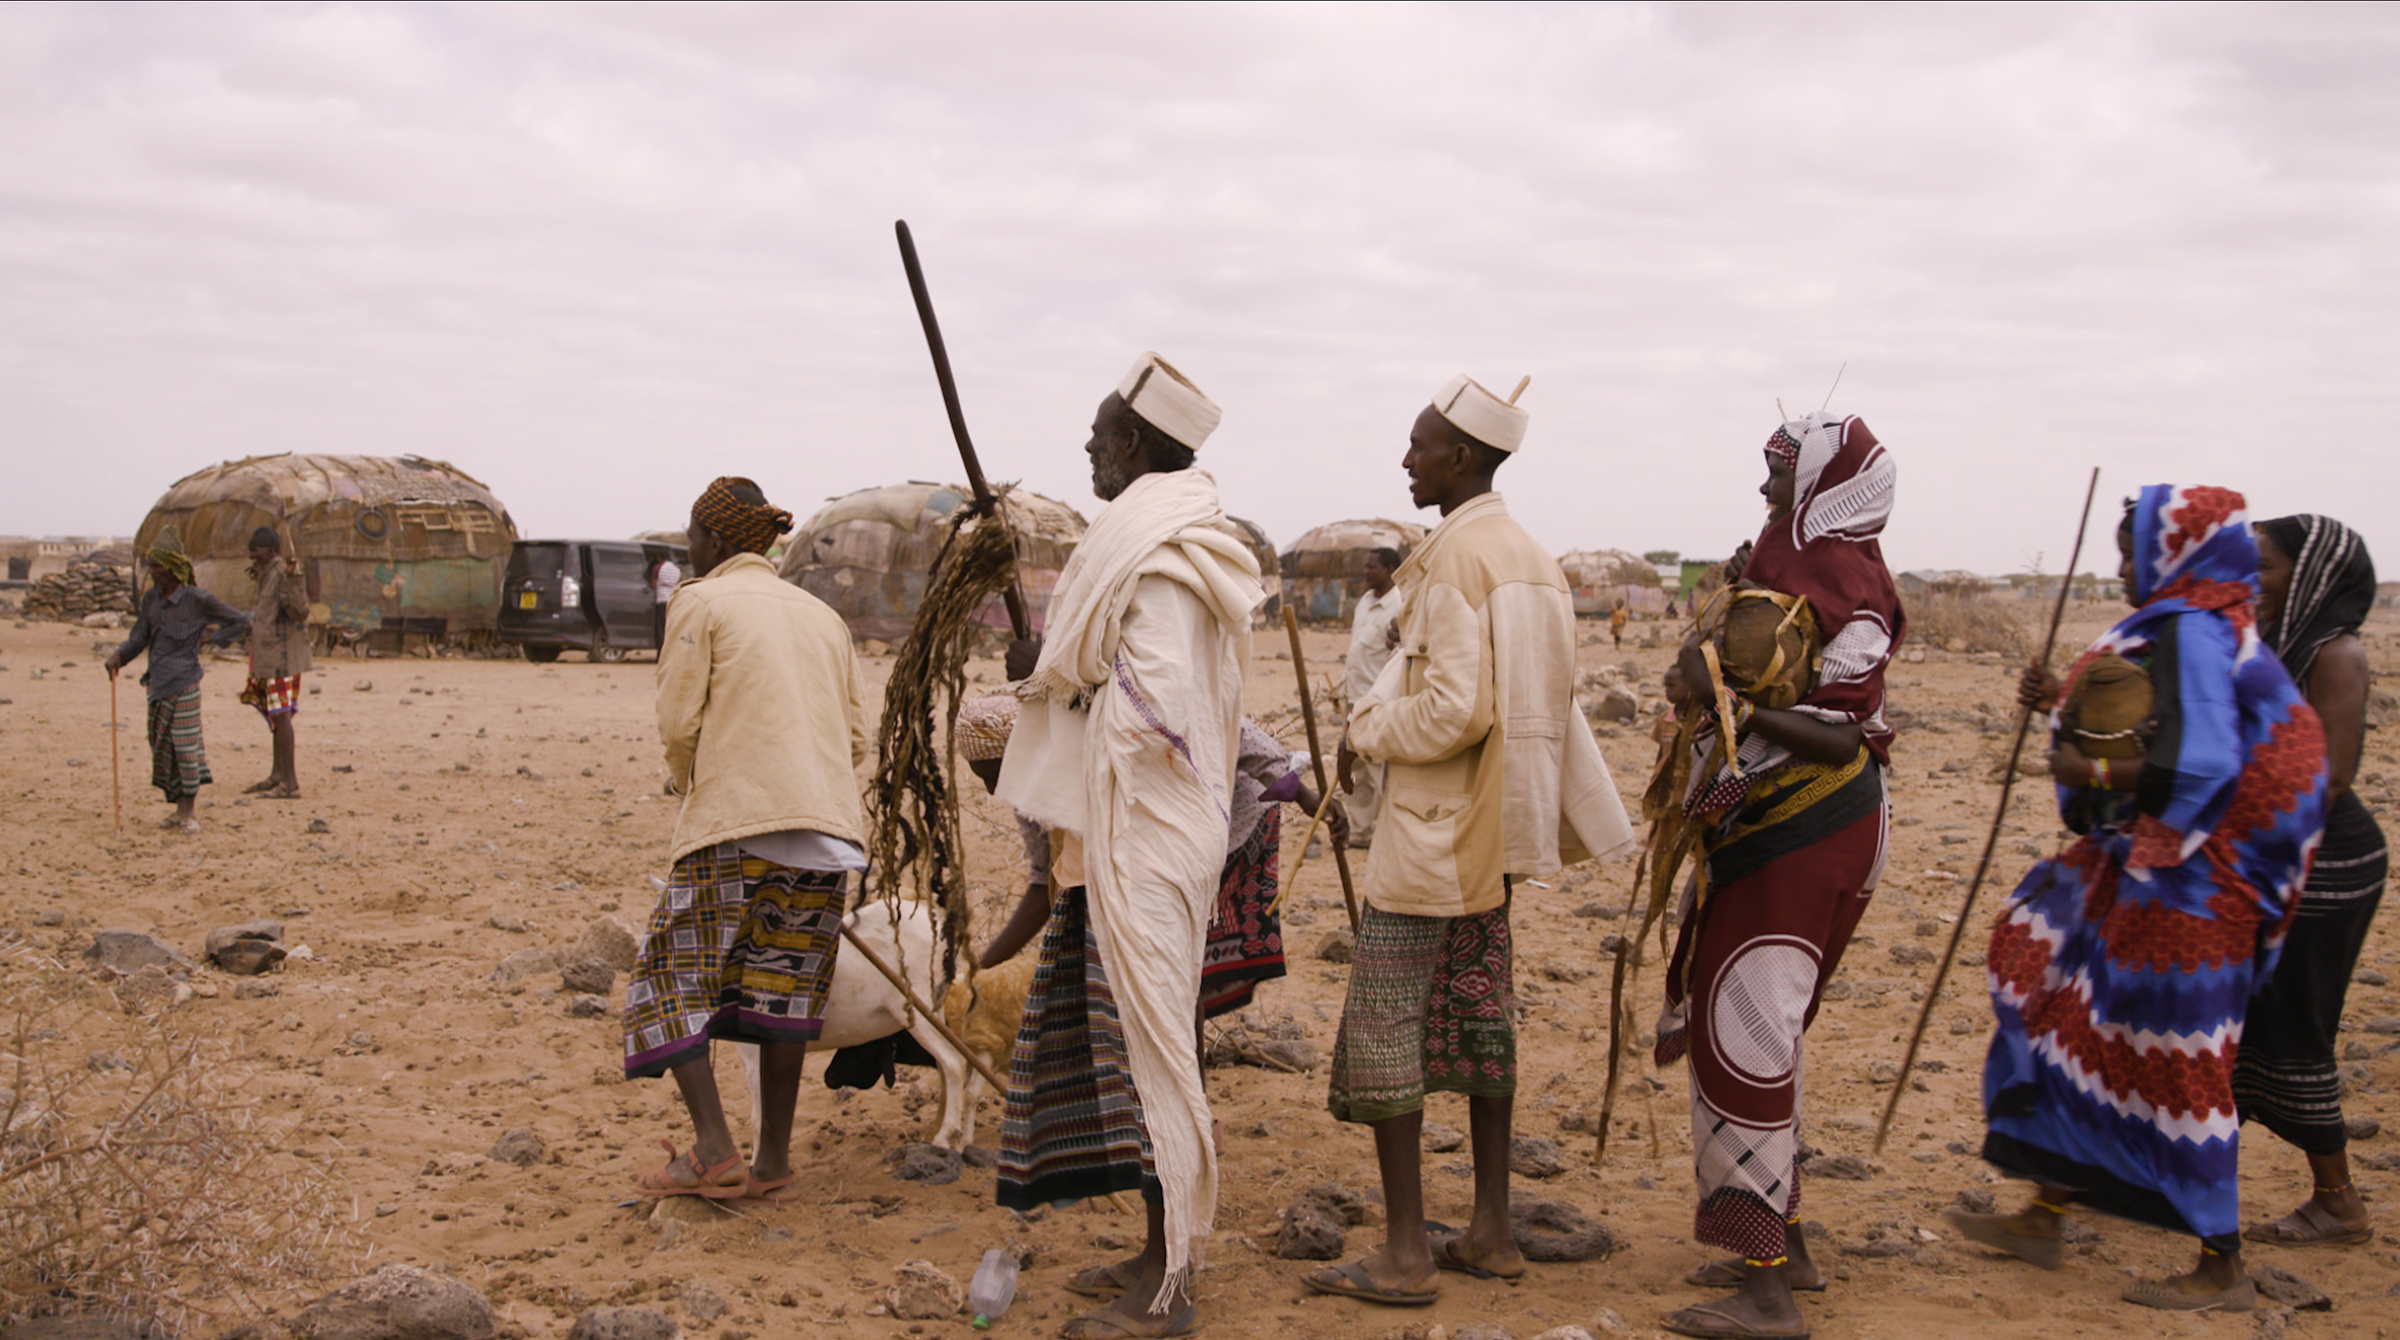 Gabra men carrying gifts before a wedding. The groom's family will present gifts to the bride's father, including a dowry of three camels, in Marsabit county, Kenya, on March 14, 2020.